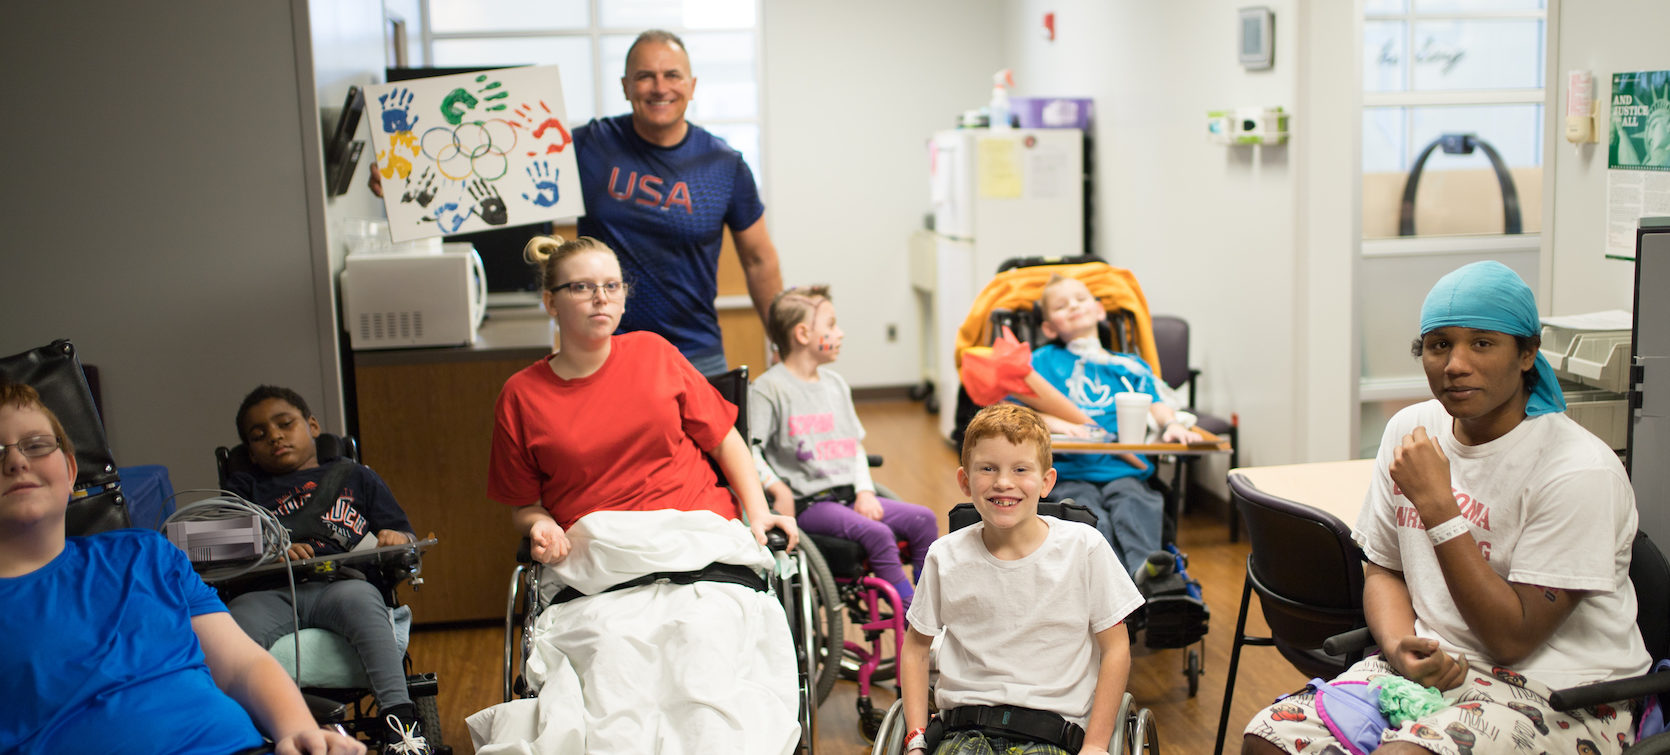 Patients Catch the Olympic Spirit